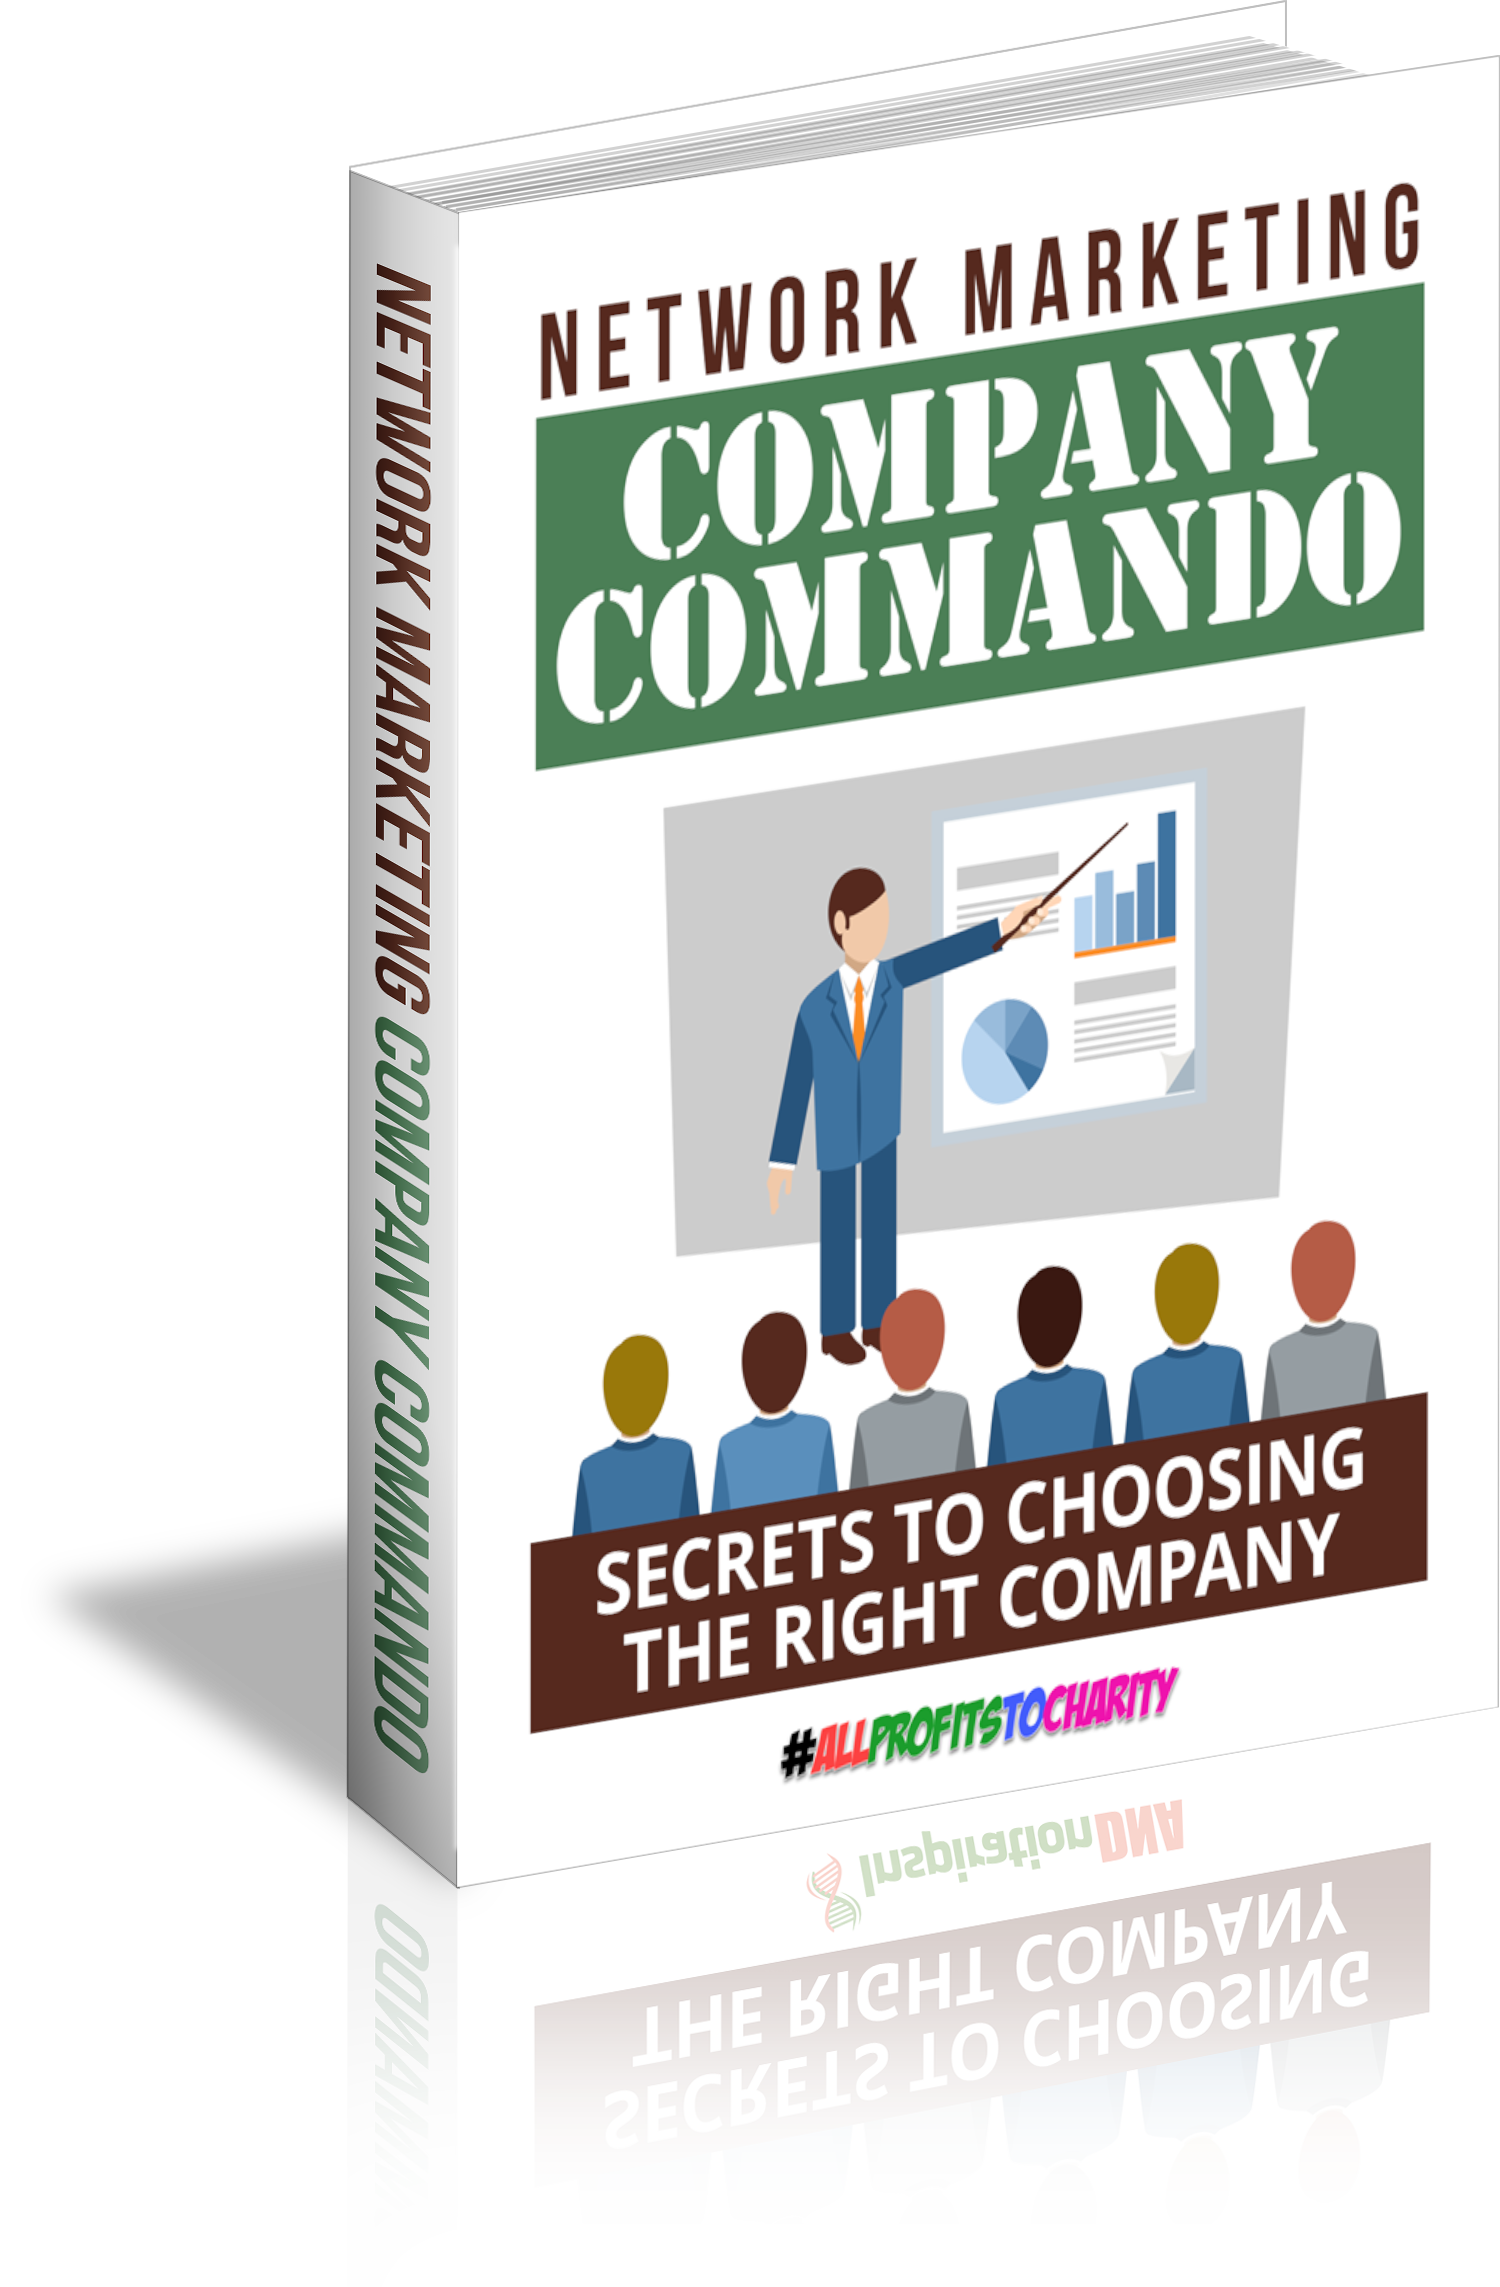 Network Marketing Company Commando cover